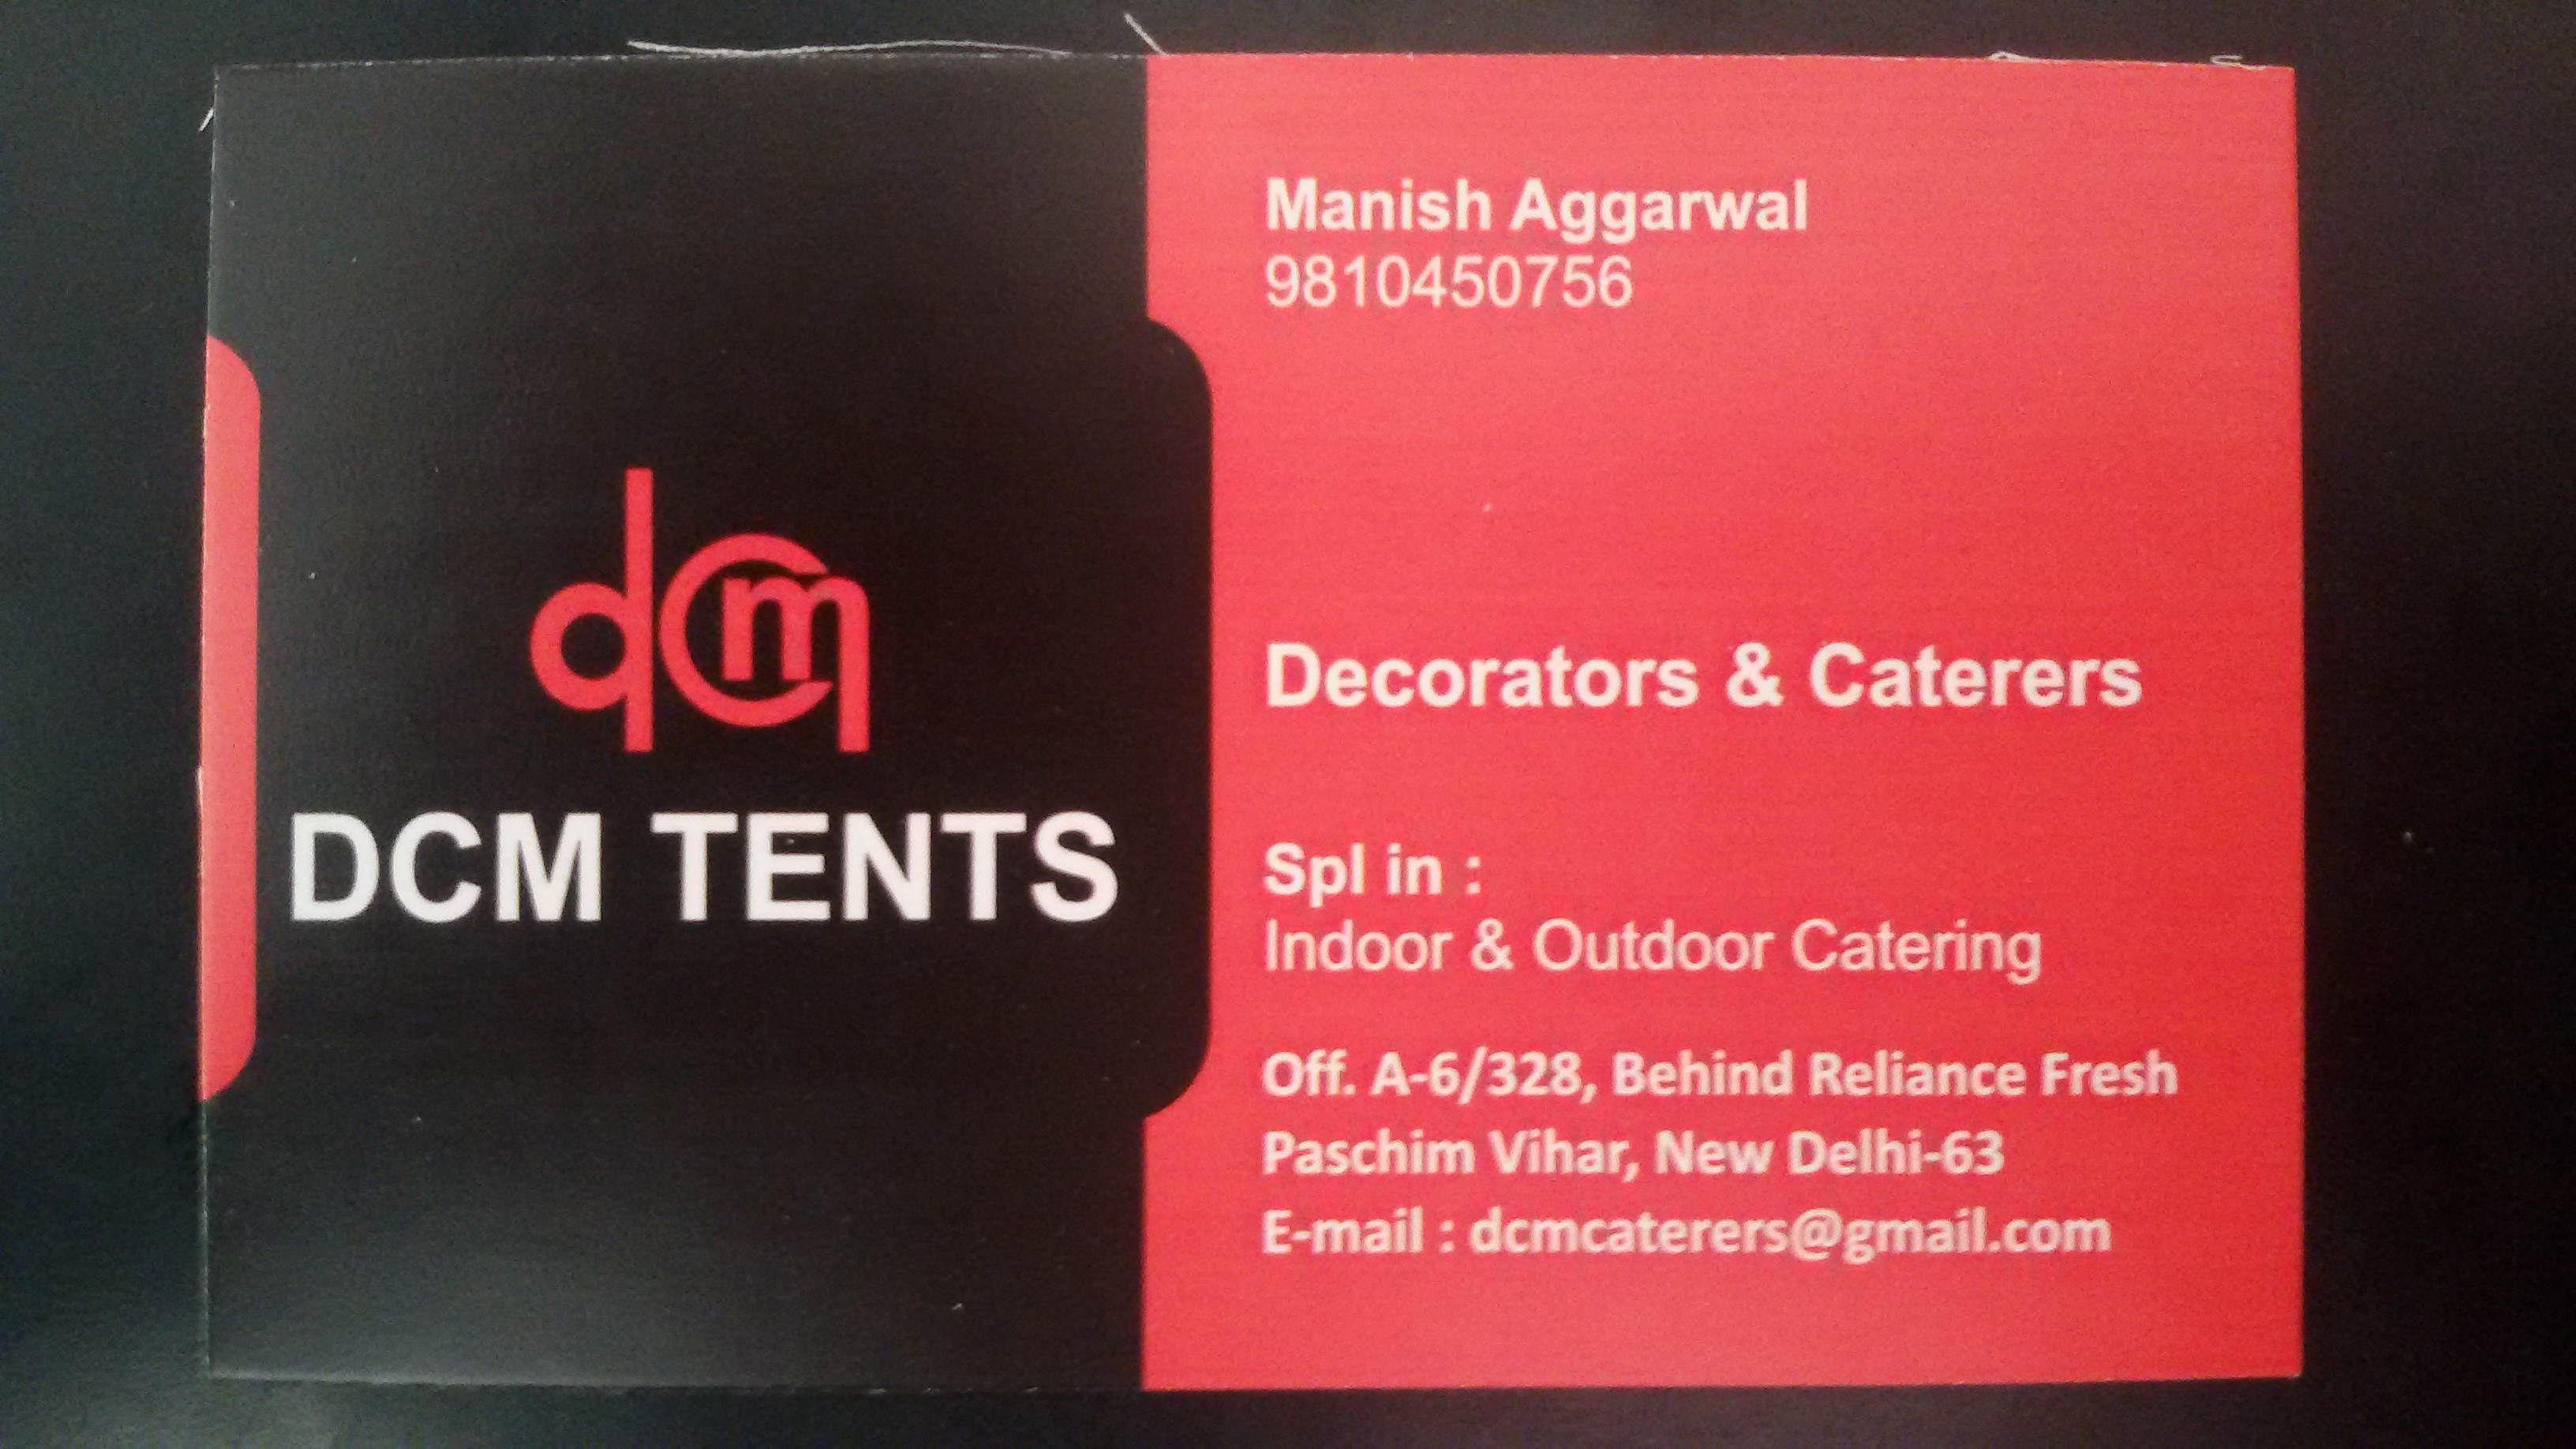 DCM Tents Caterers & Decorators